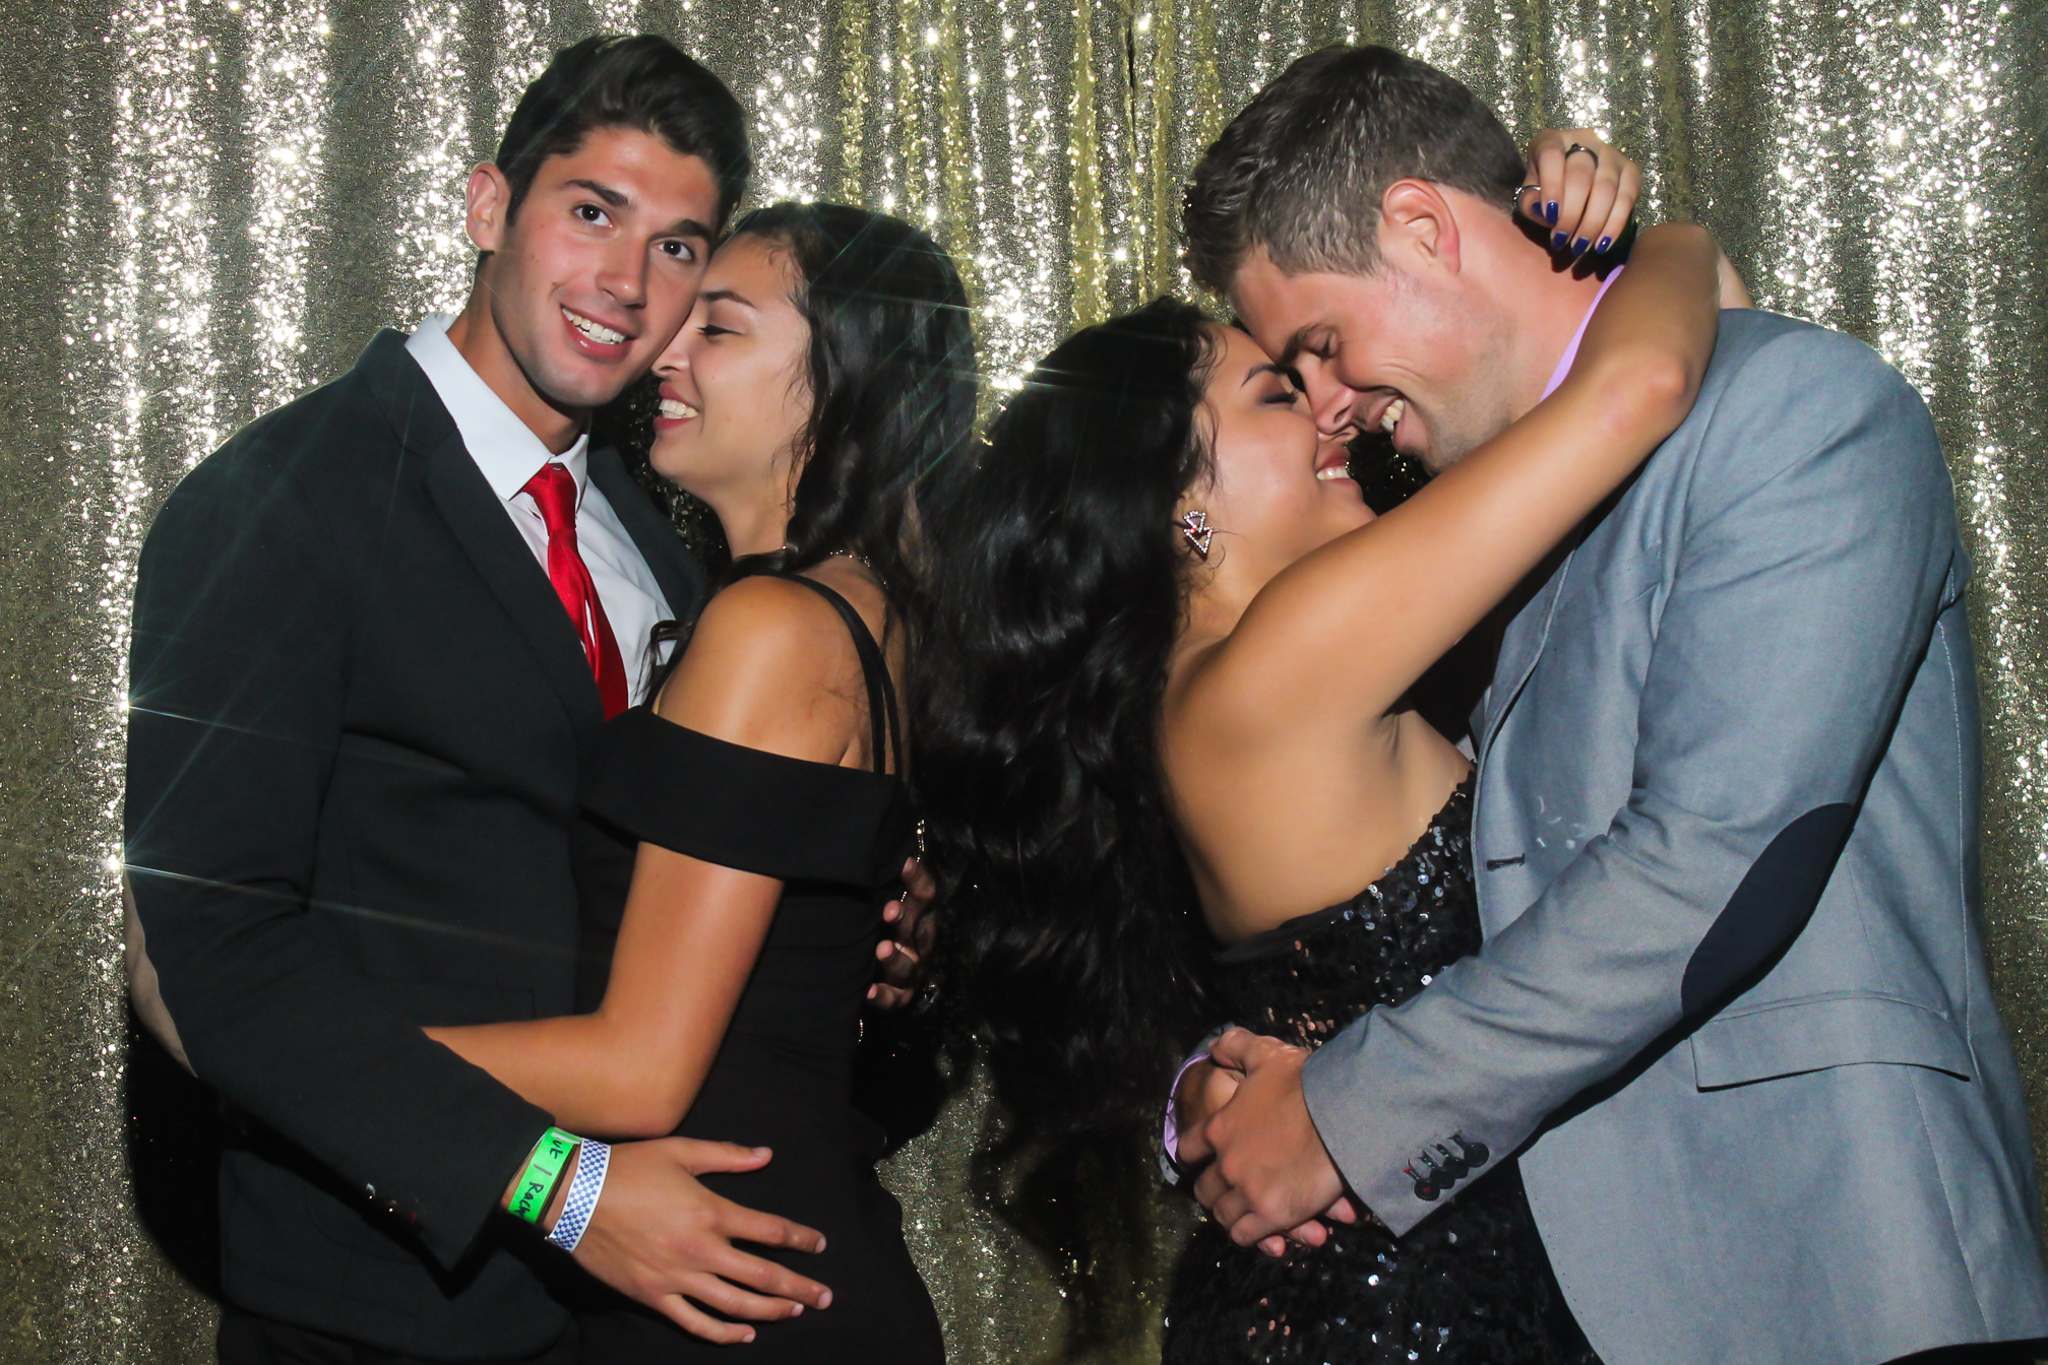 CSULB Sigma Kappa Date Party Photo Booth 05/01/15